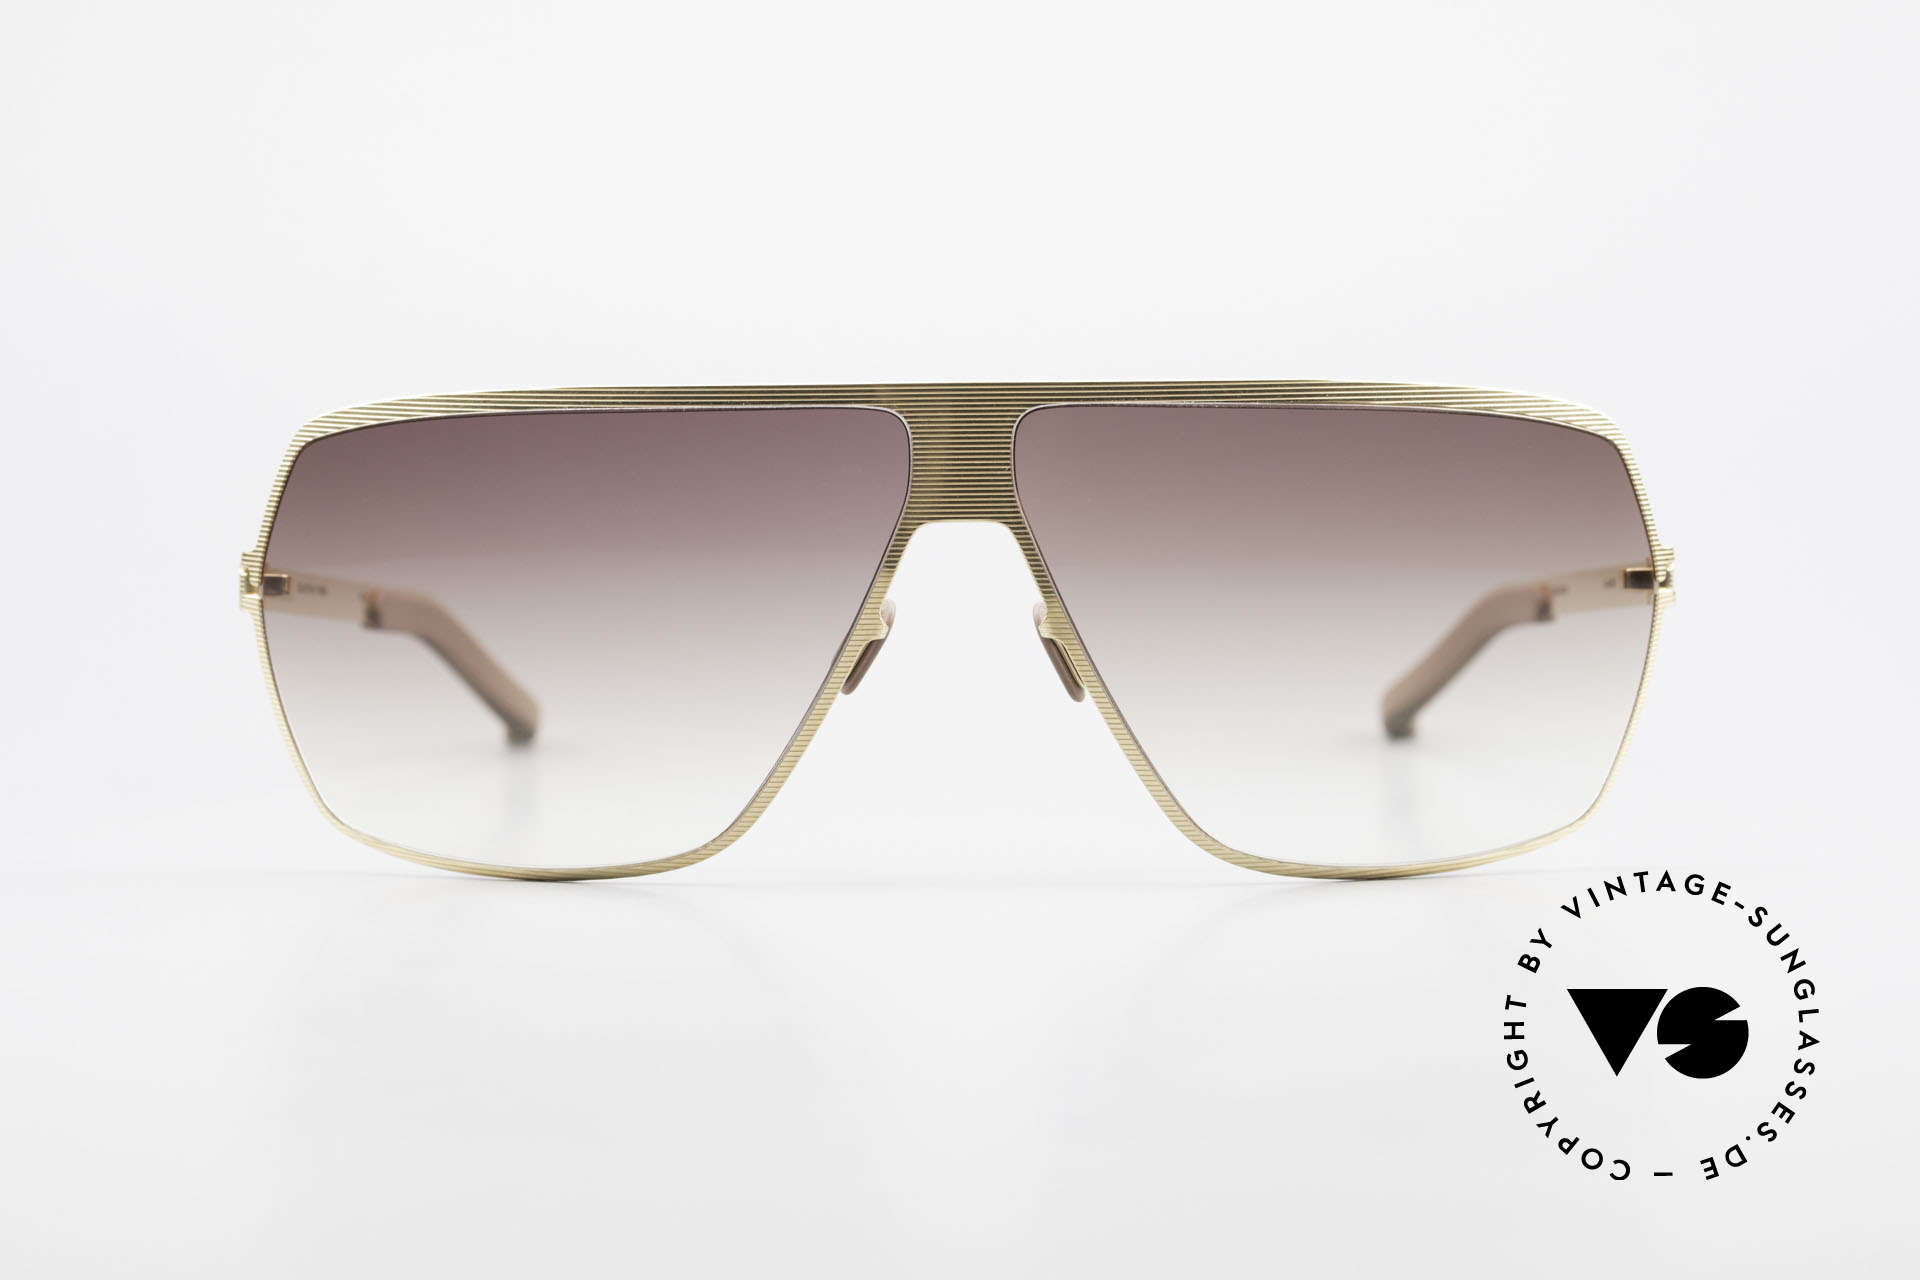 Mykita Rock Vintage No 1 Collection 2009, MYKITA: the youngest brand in our vintage collection, Made for Men